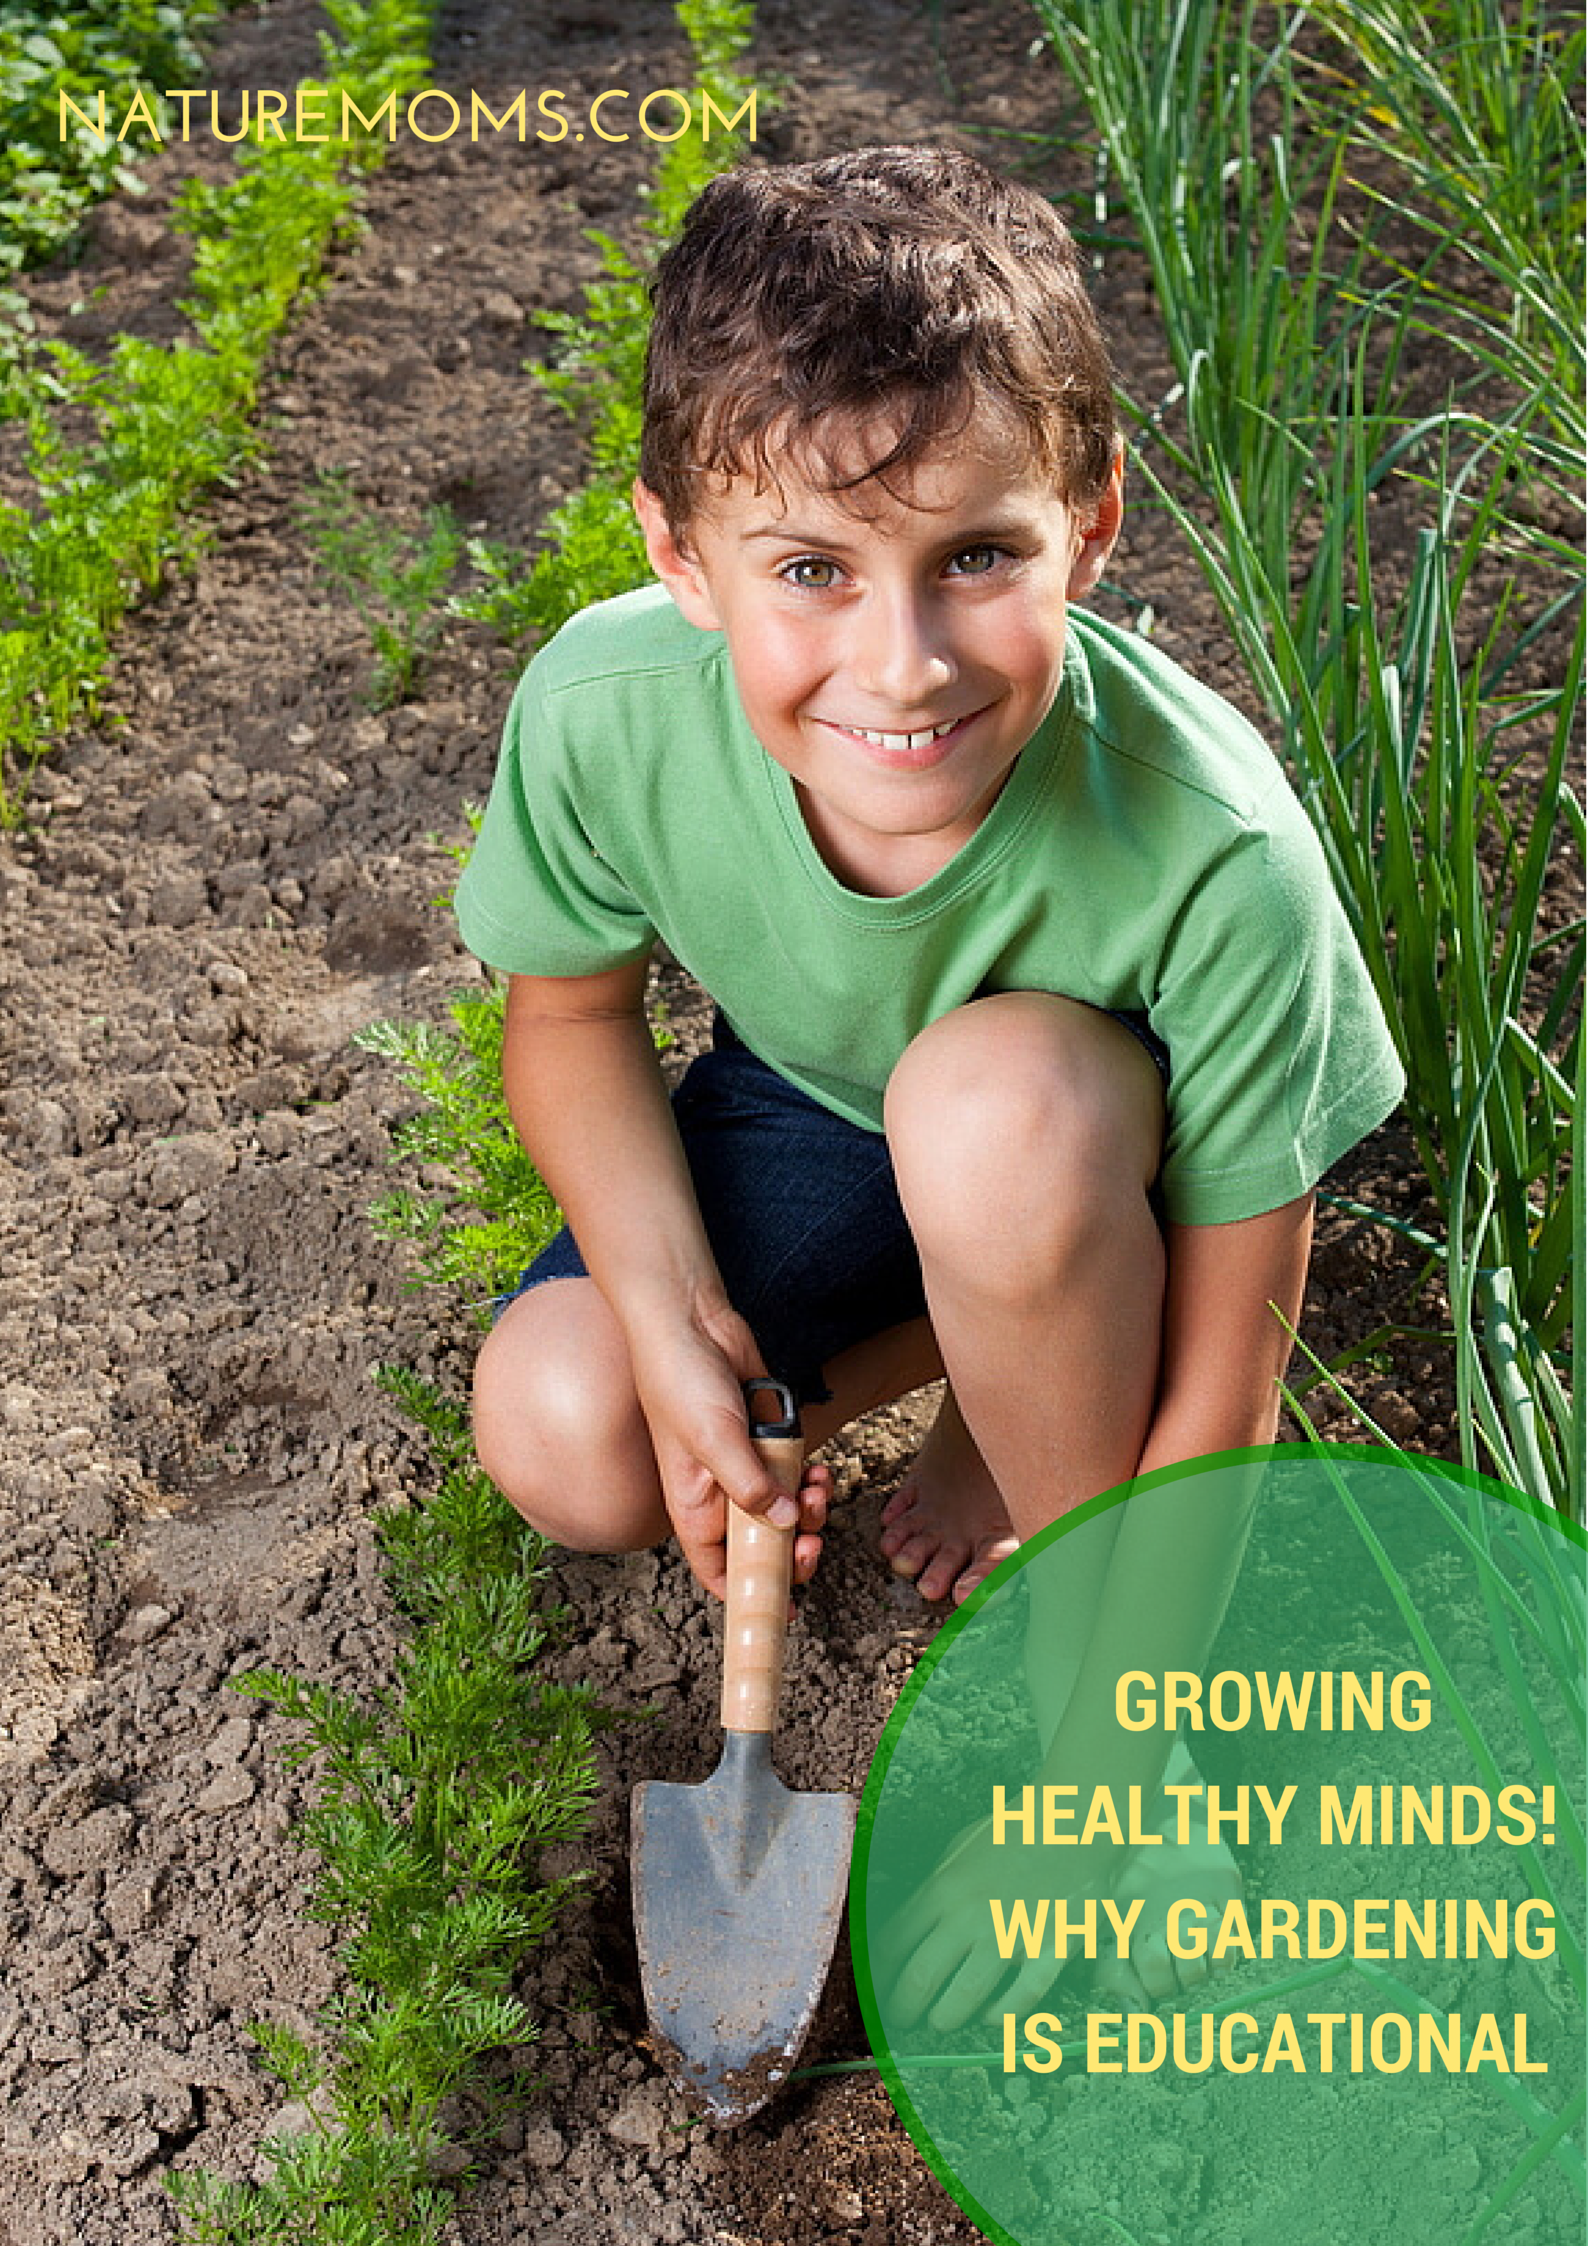 Growing Healthy Minds – Why Gardening is Educational